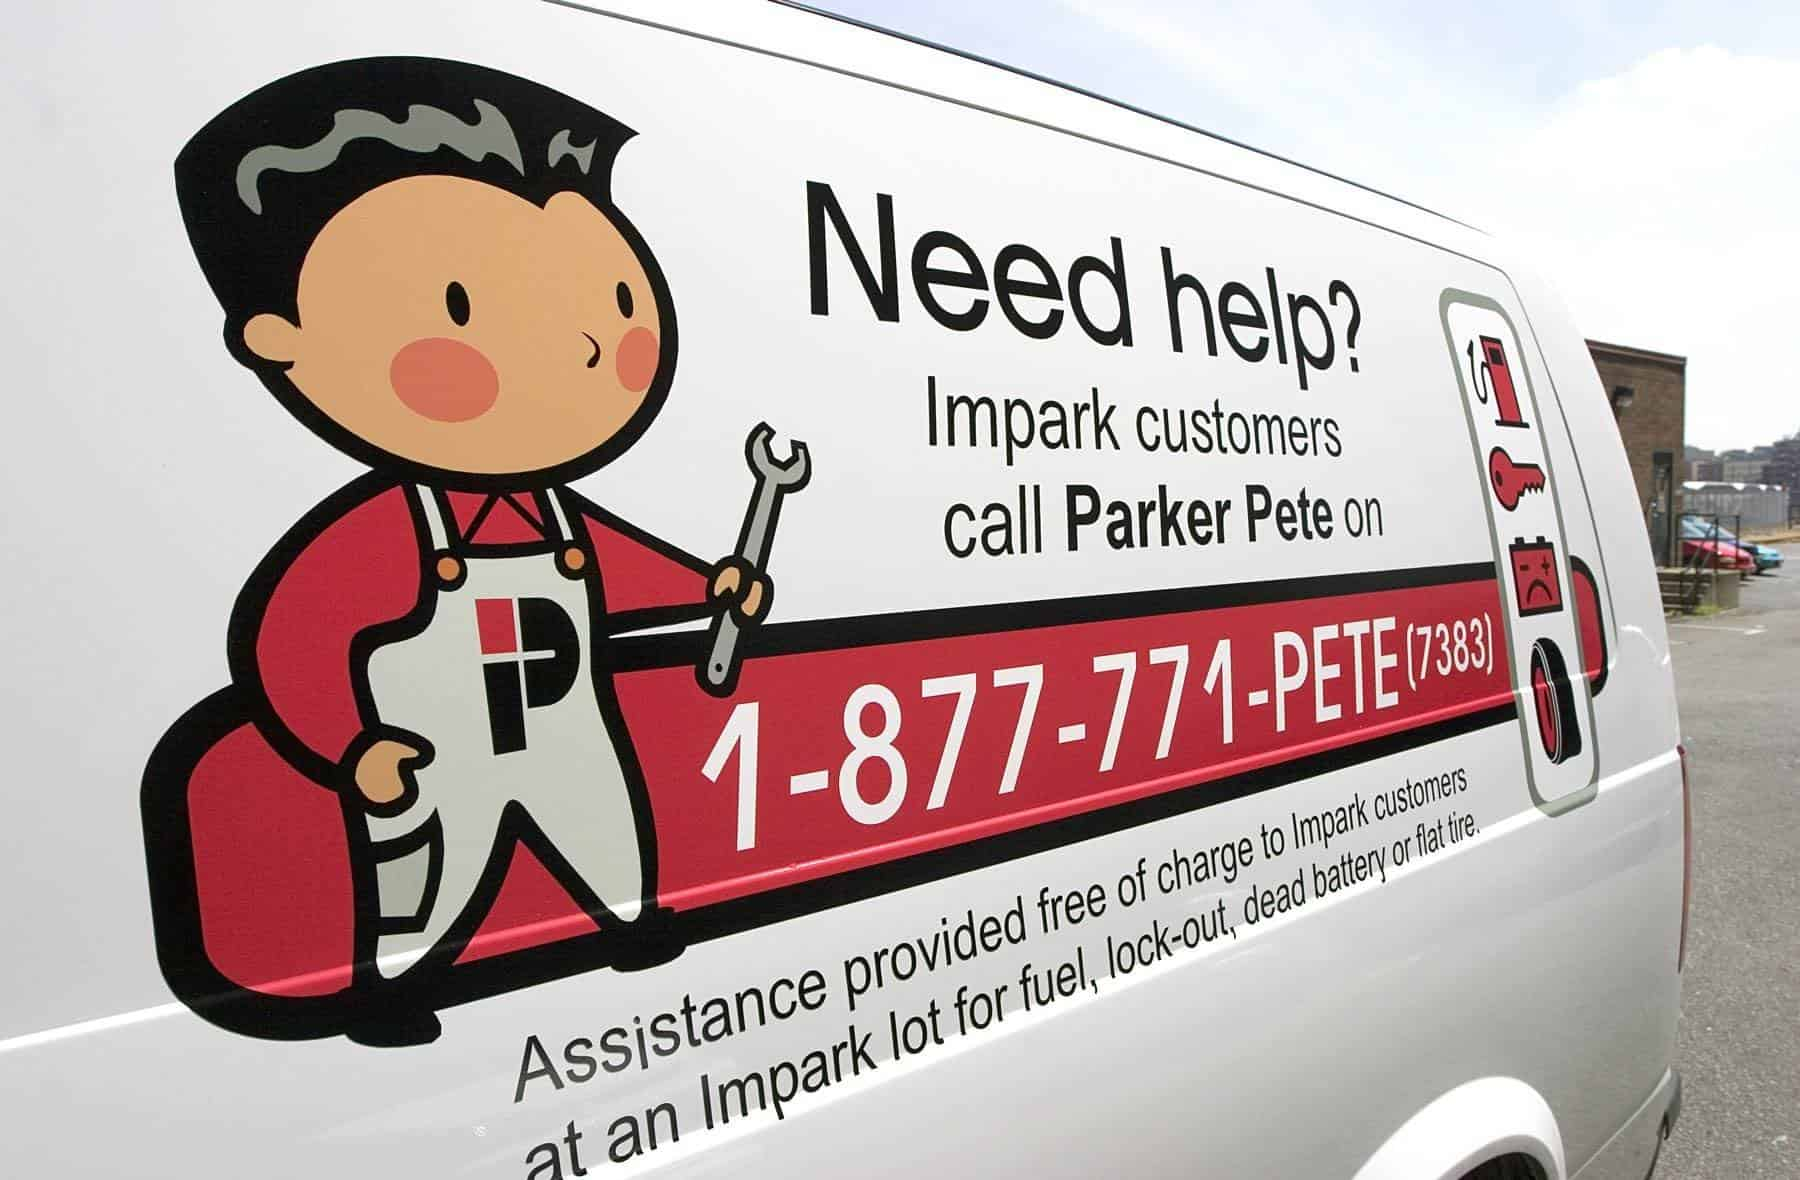 Parker Pete Car by Cheap Parking Calgary